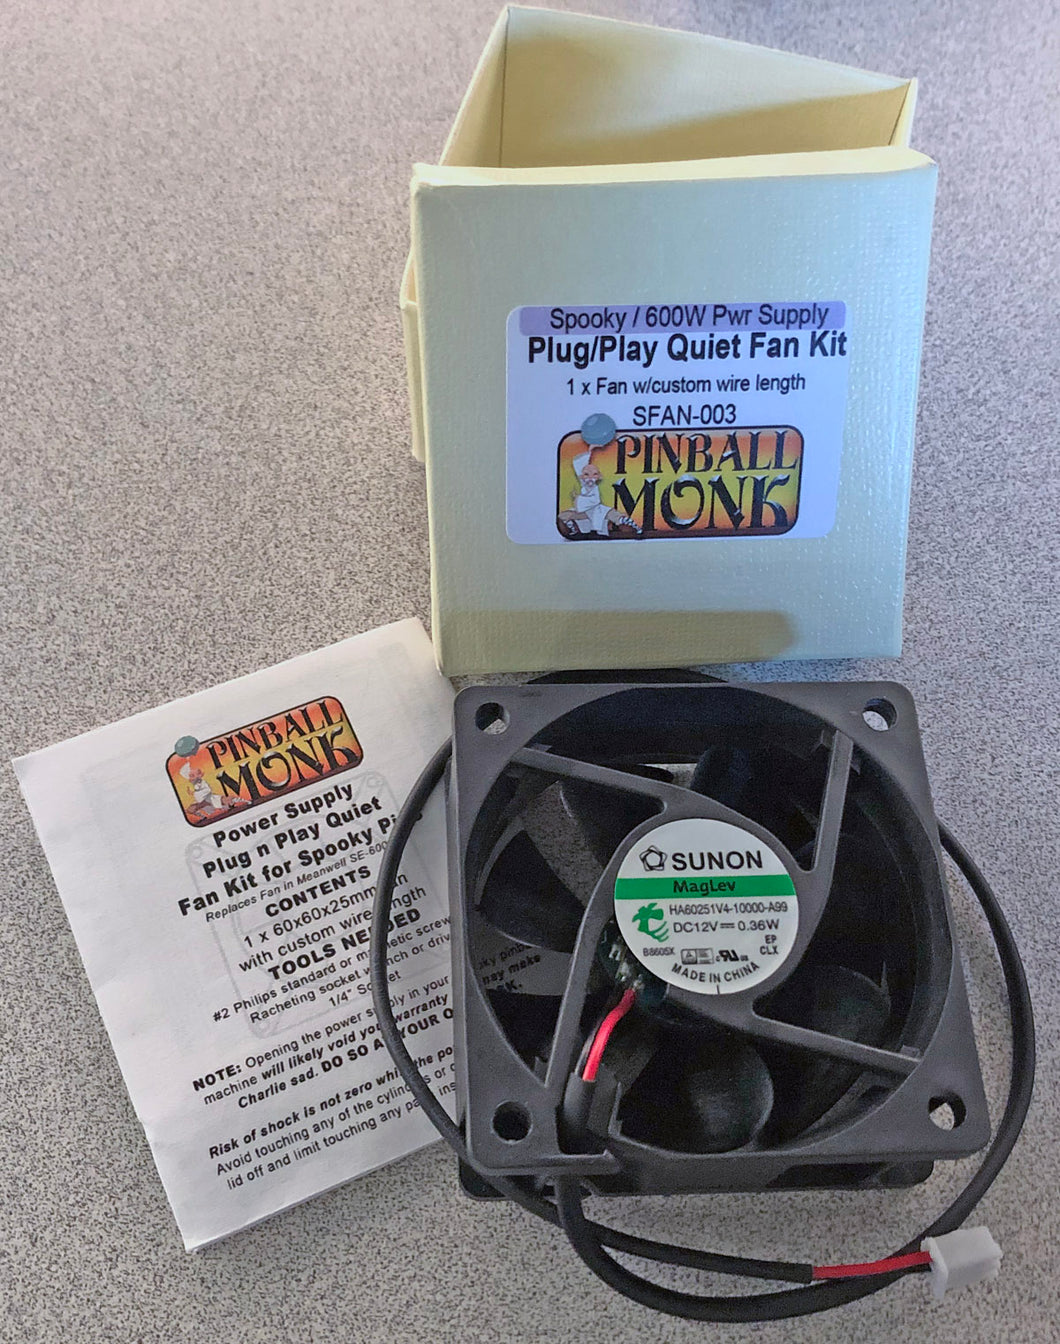 Spooky/Multimorphic Plug n Play Quiet Fan Kit